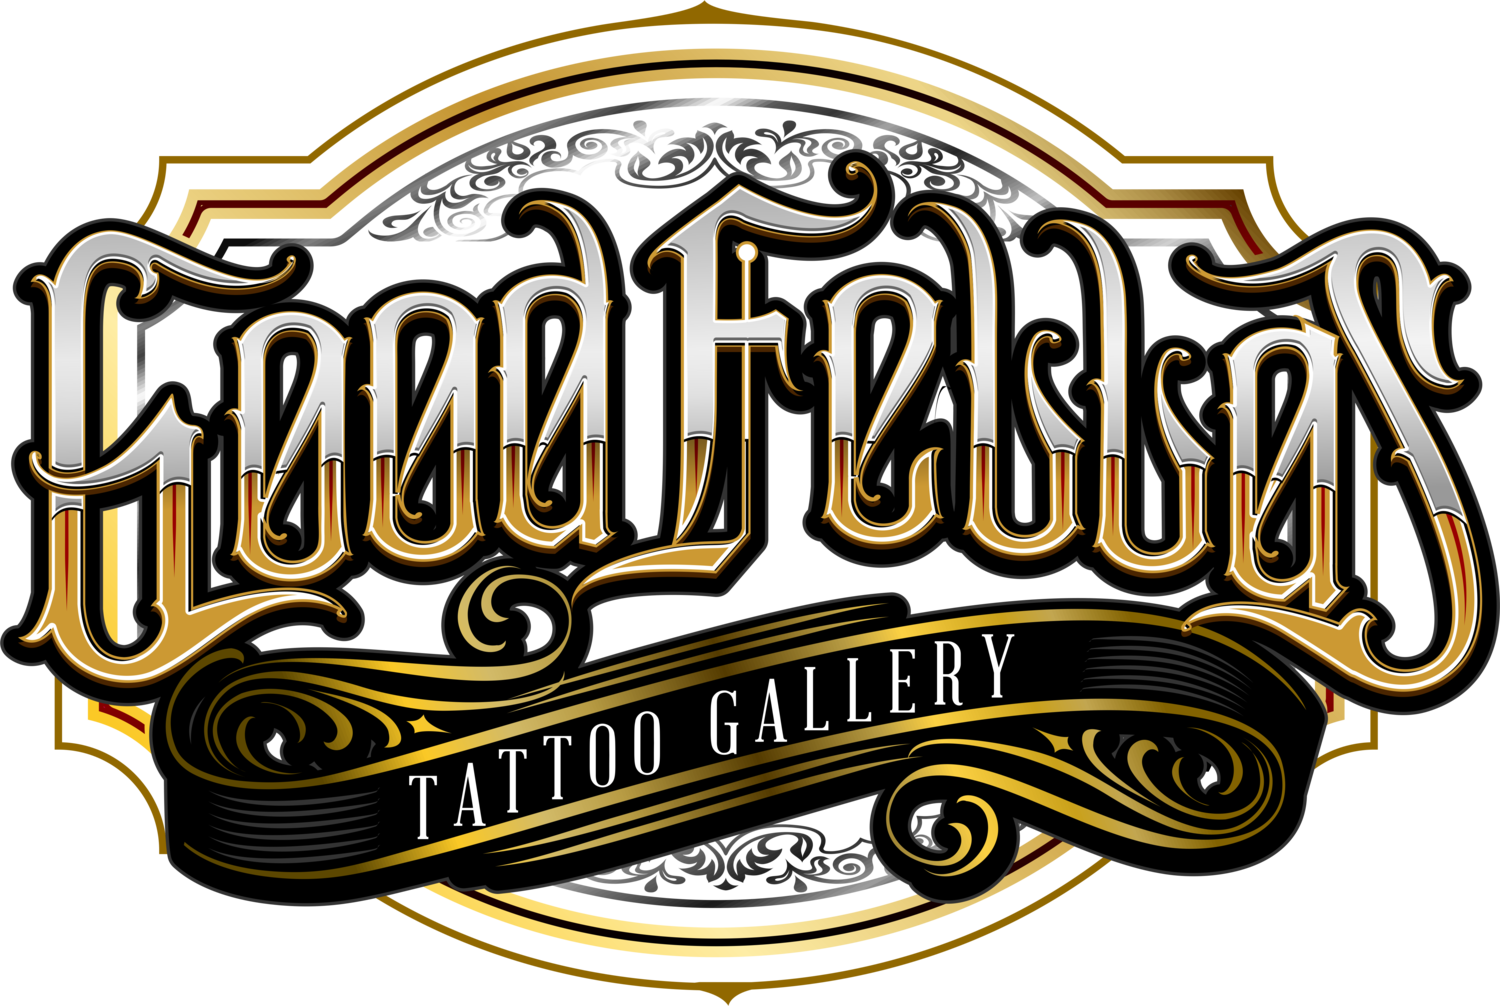 Goodfellas Tattoo Gallery